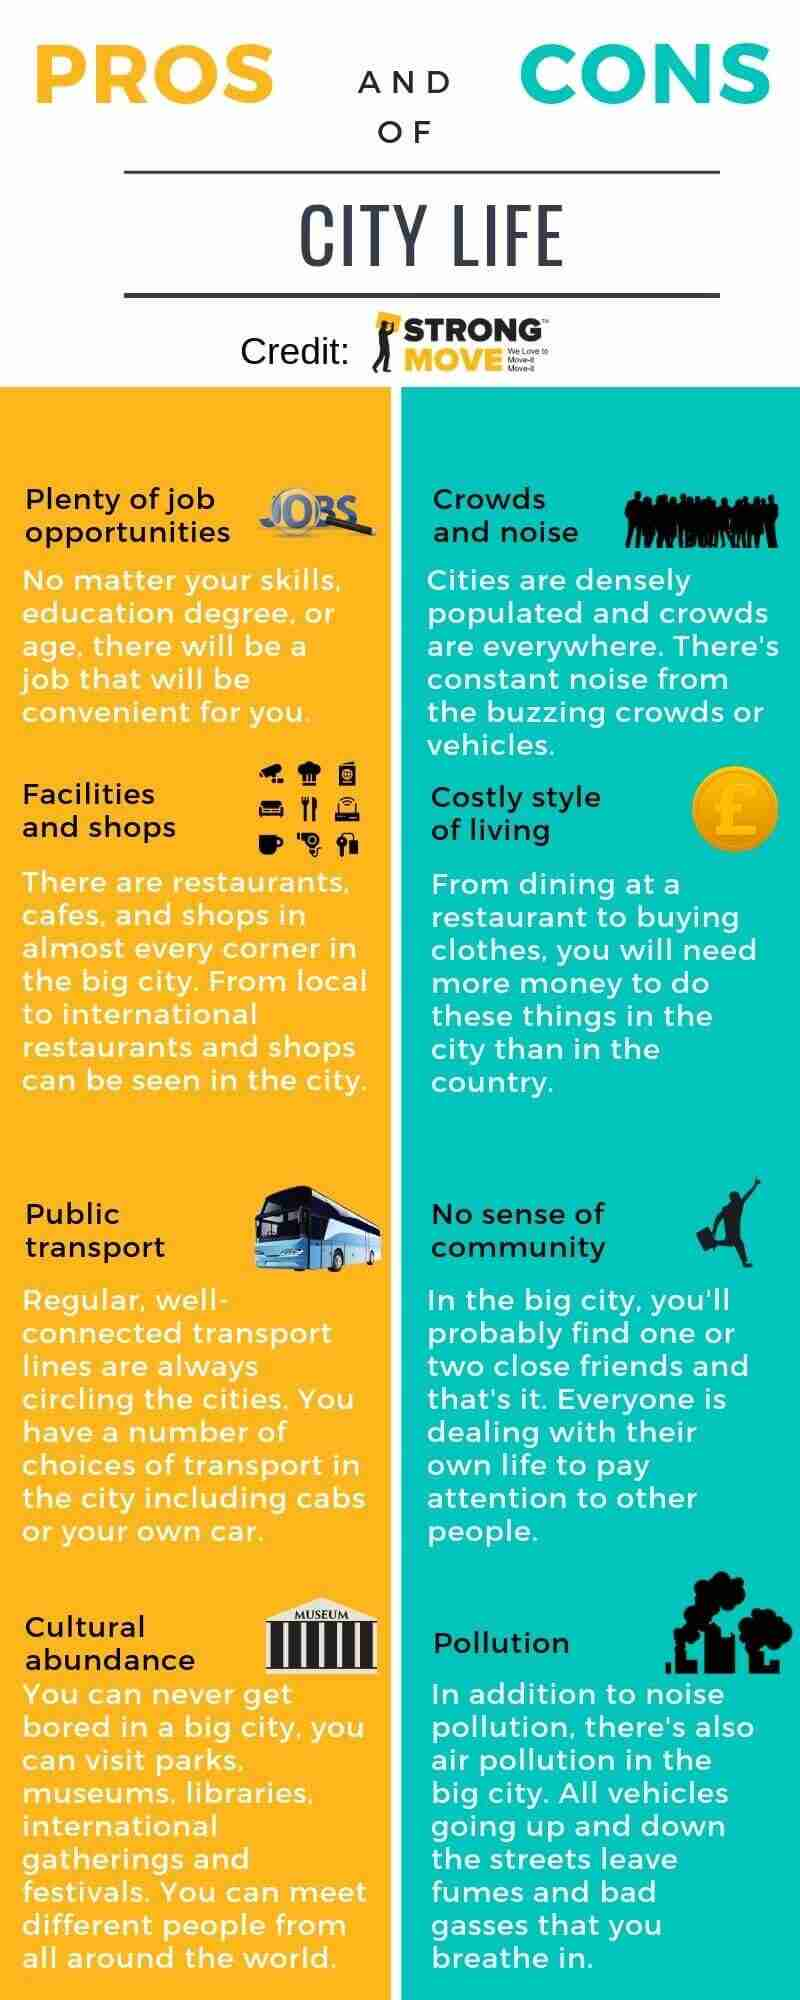 Pros and Cons of City Life Info-graphic